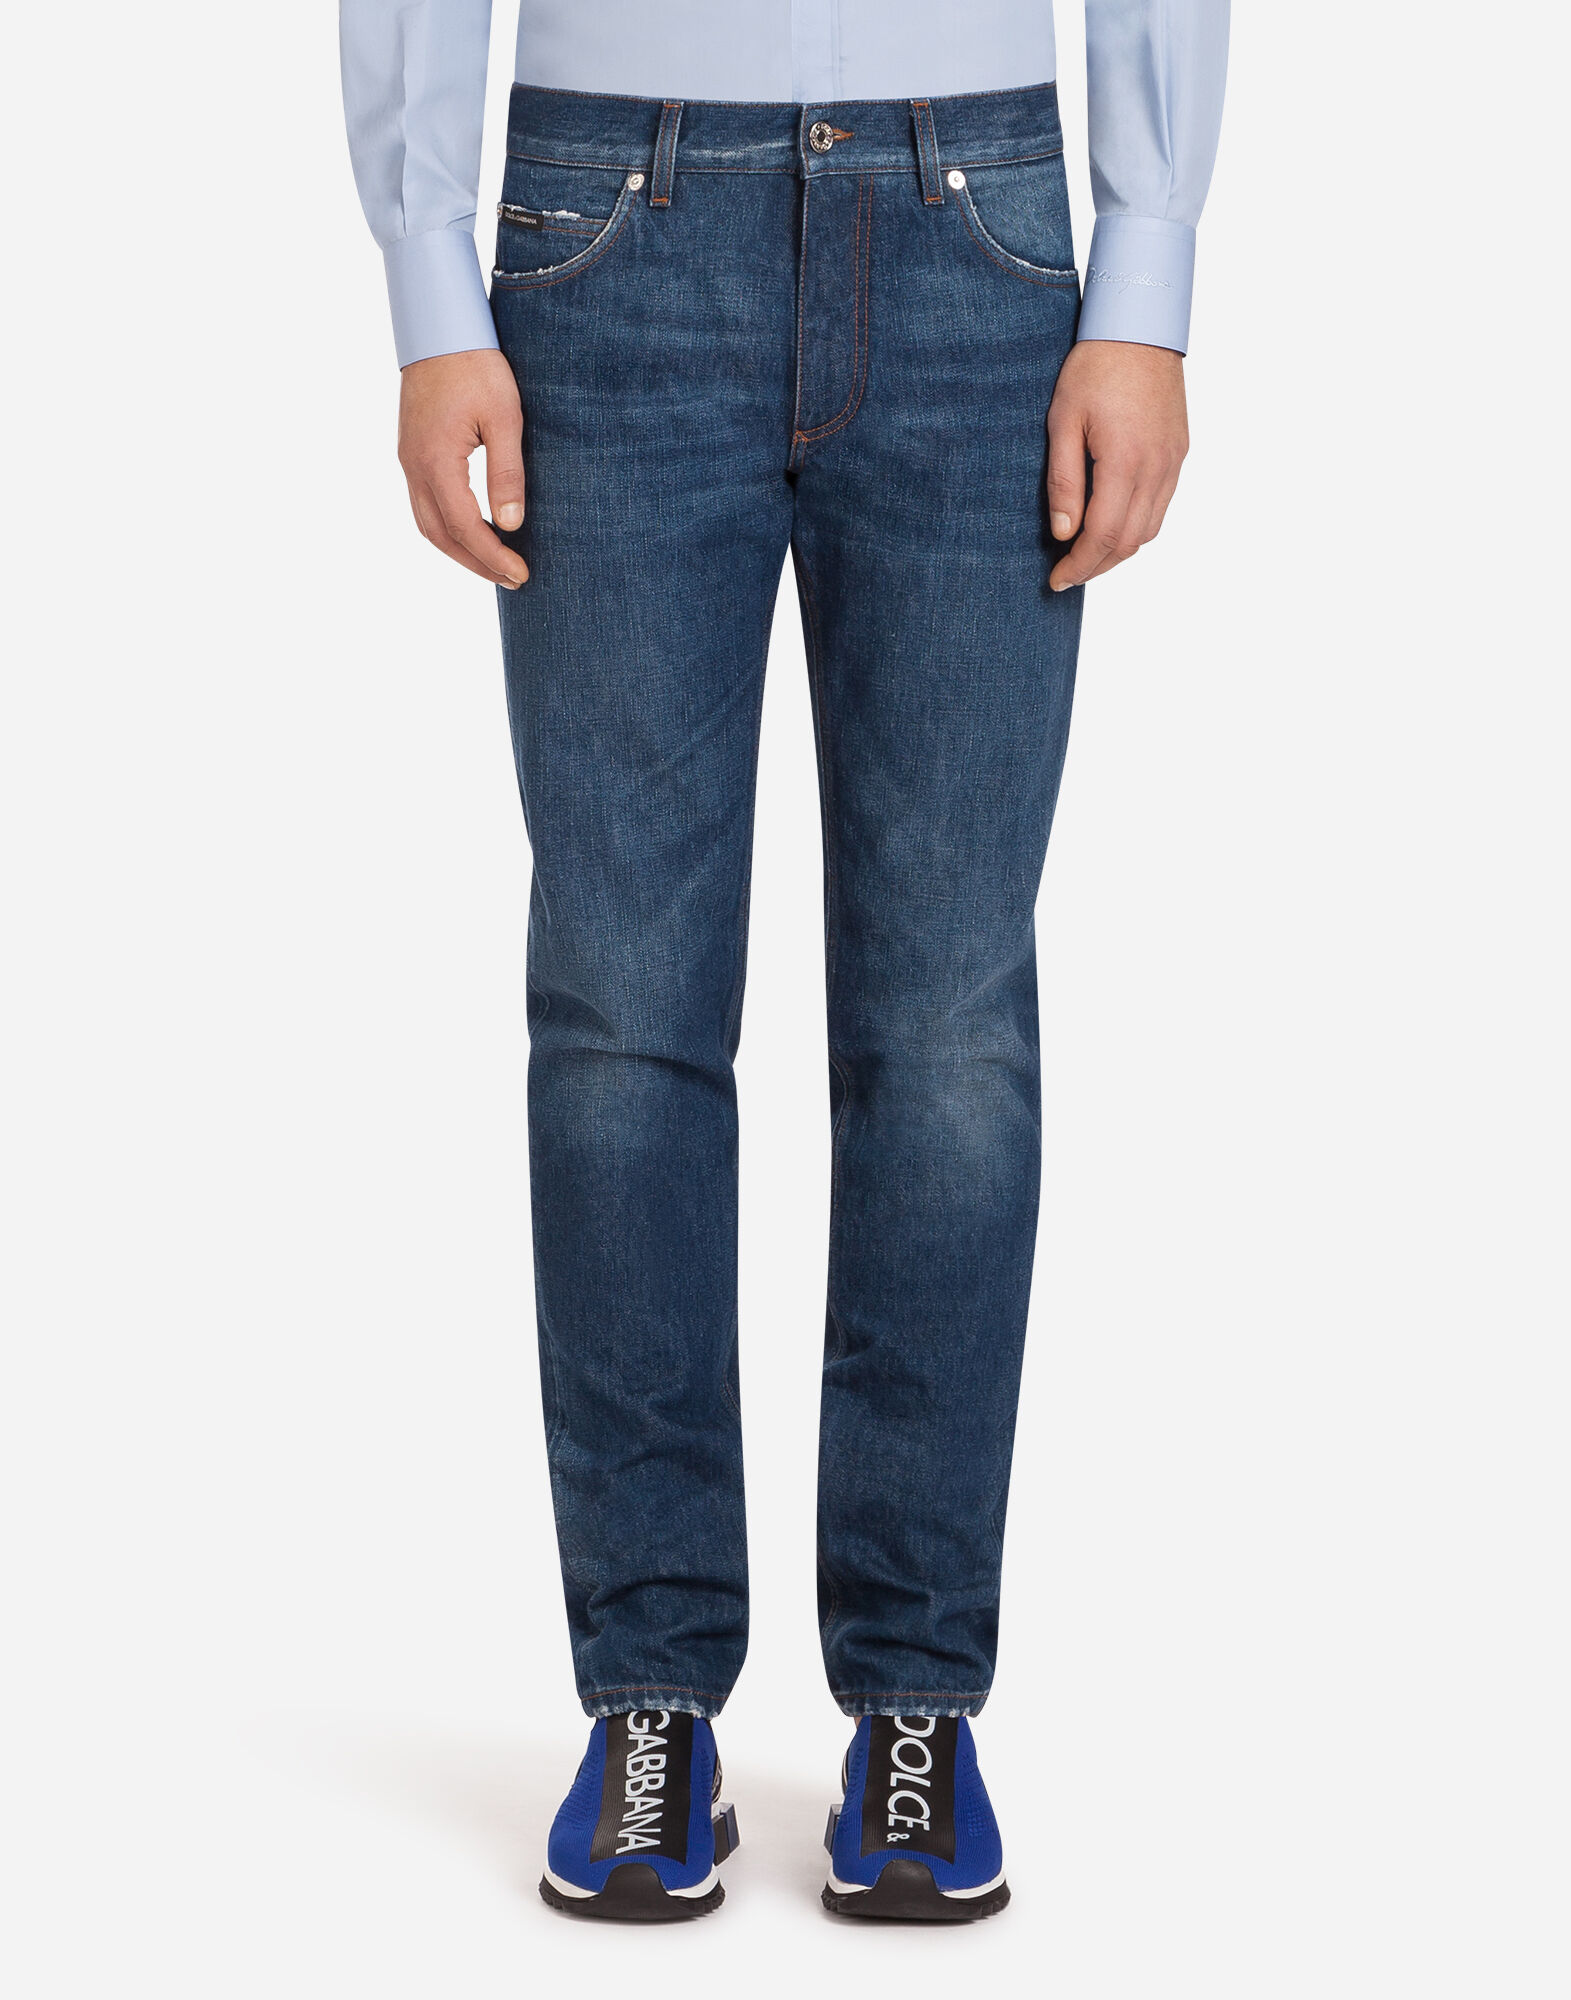 DENIM - Denim trousers Dolce & Gabbana